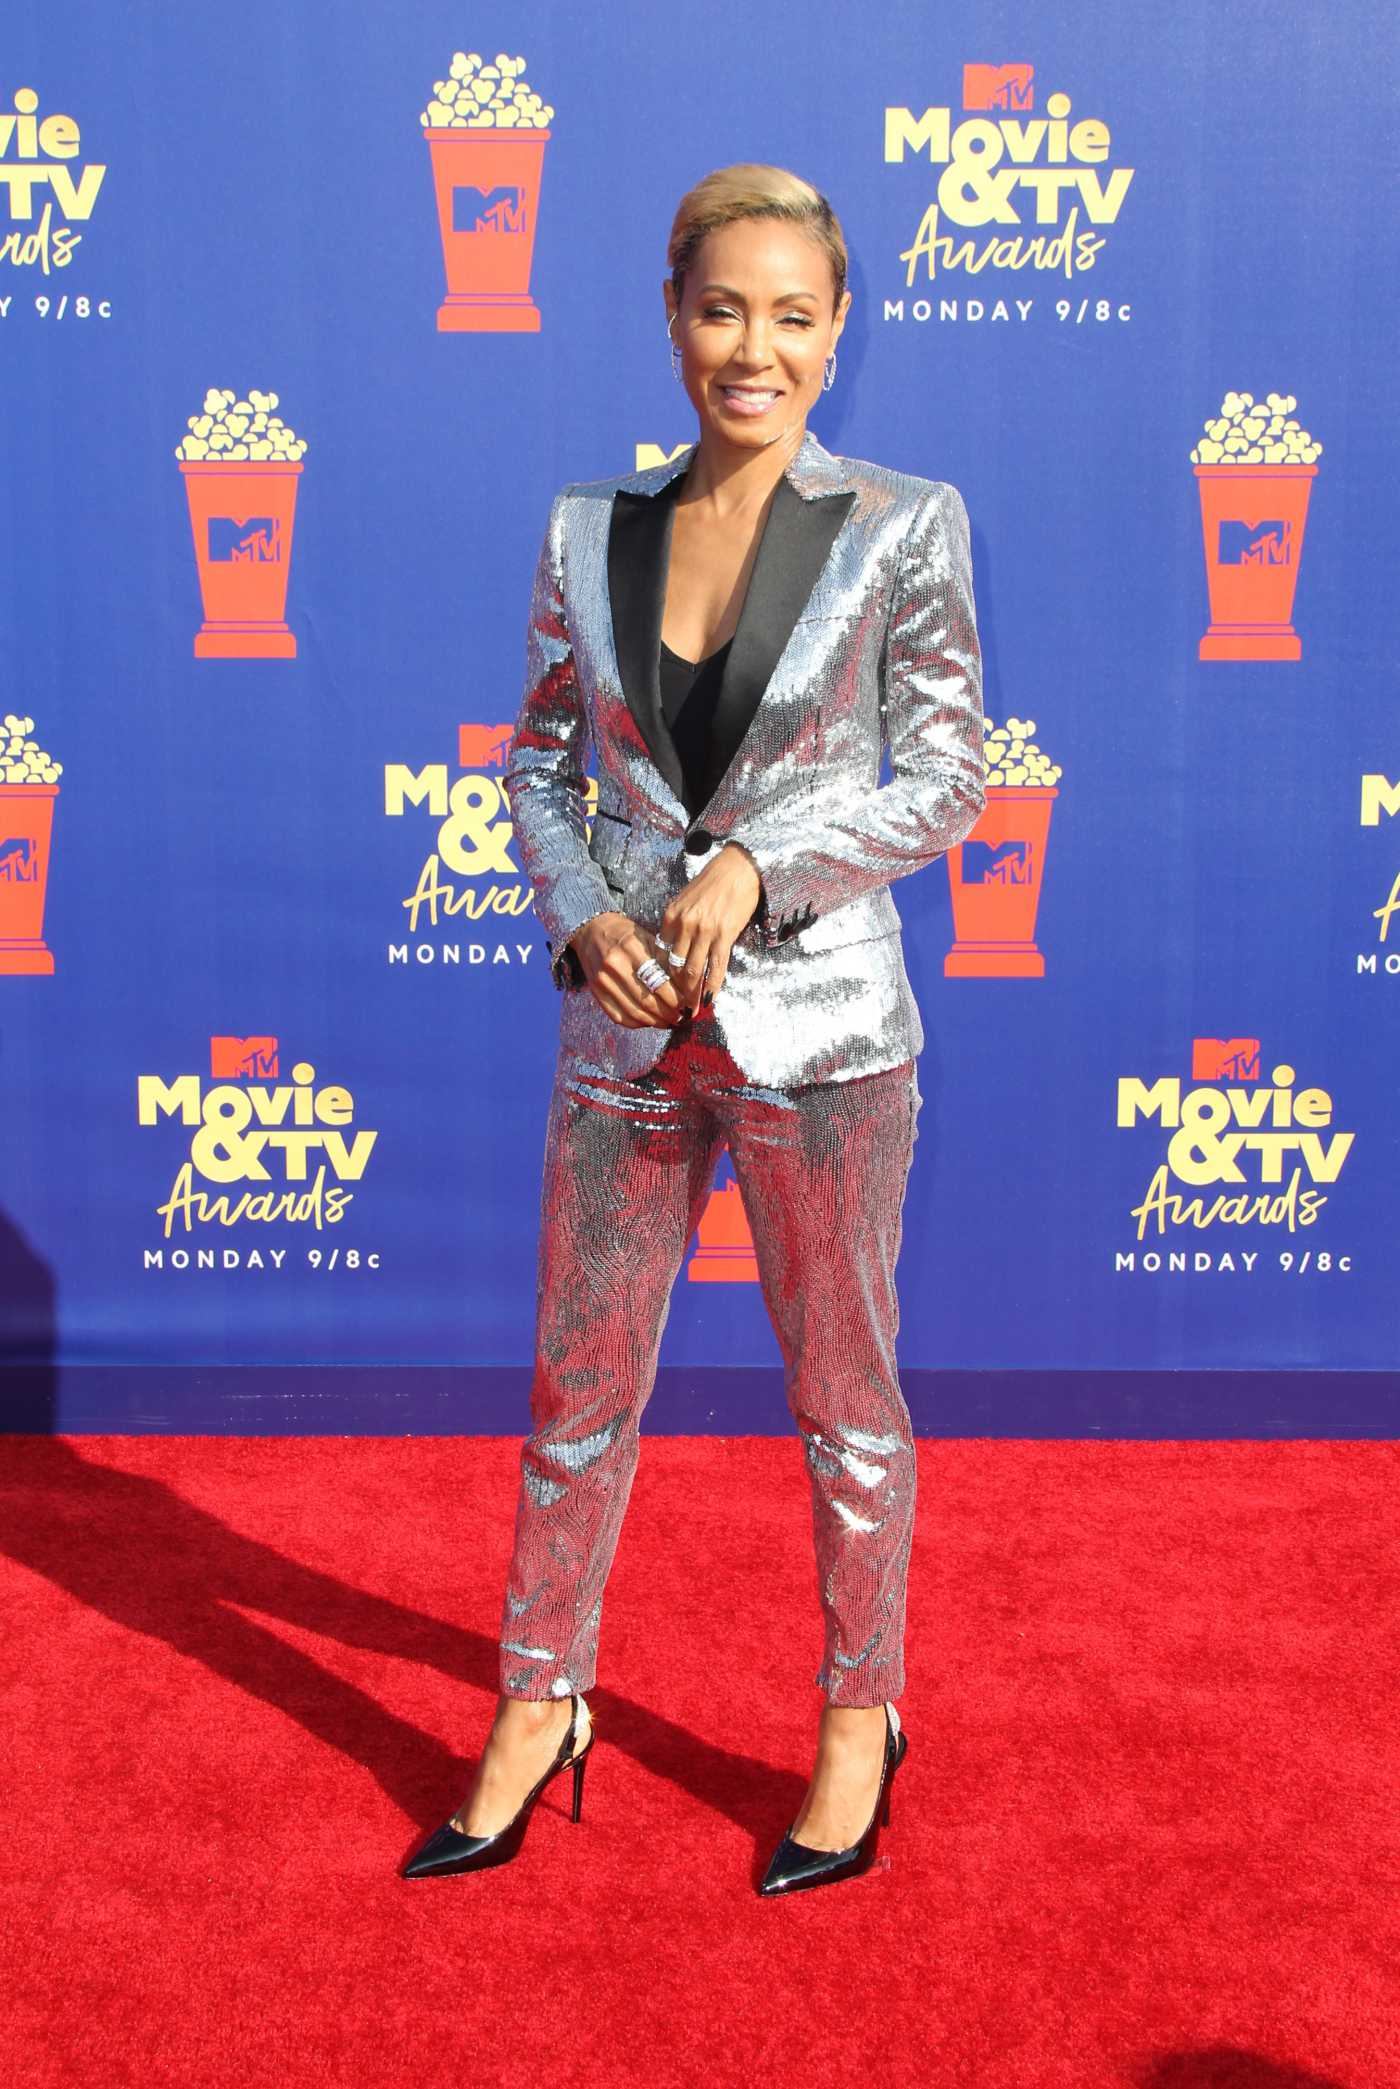 Jada Pinkett Smith Attends 2019 MTV Movie and TV Awards at Barker Hangar in Santa Monica 06/15/2019